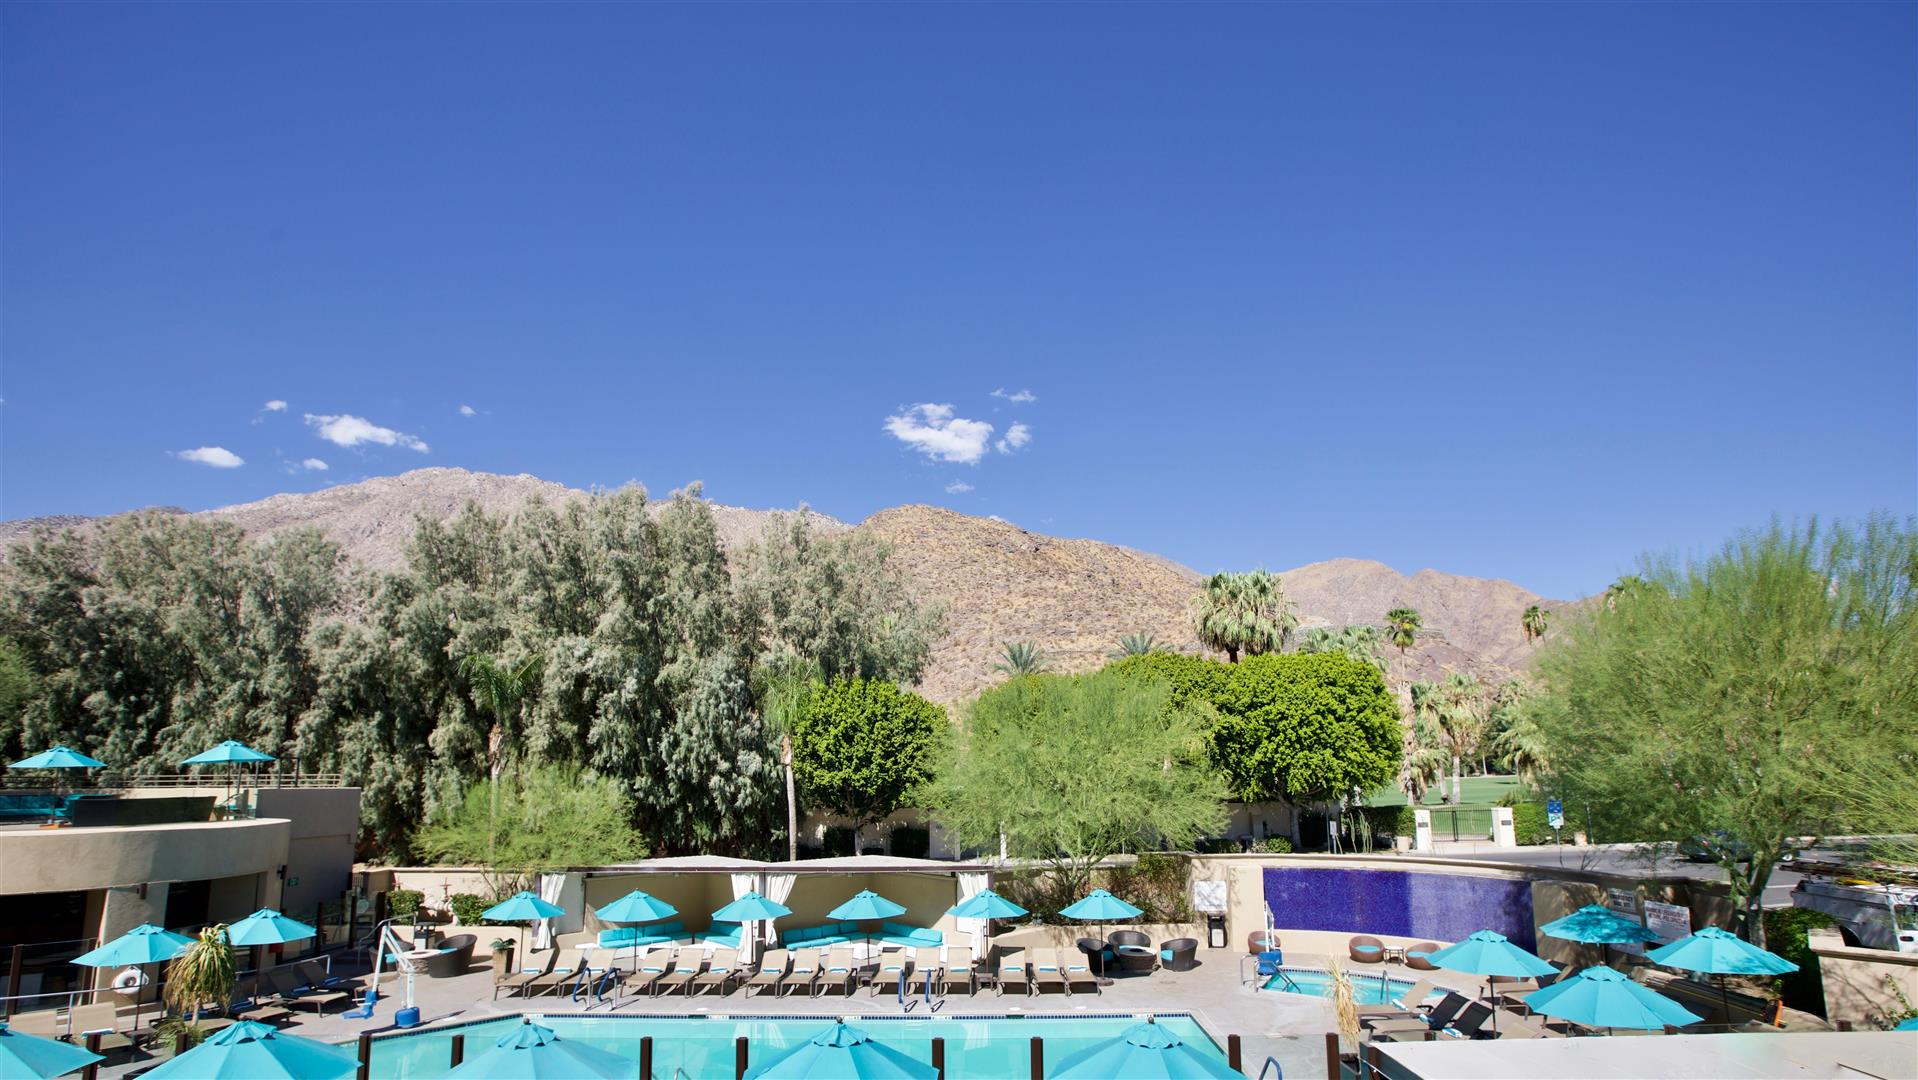 Meetings And Events At Hyatt Palm Springs Palm Springs Ca Us